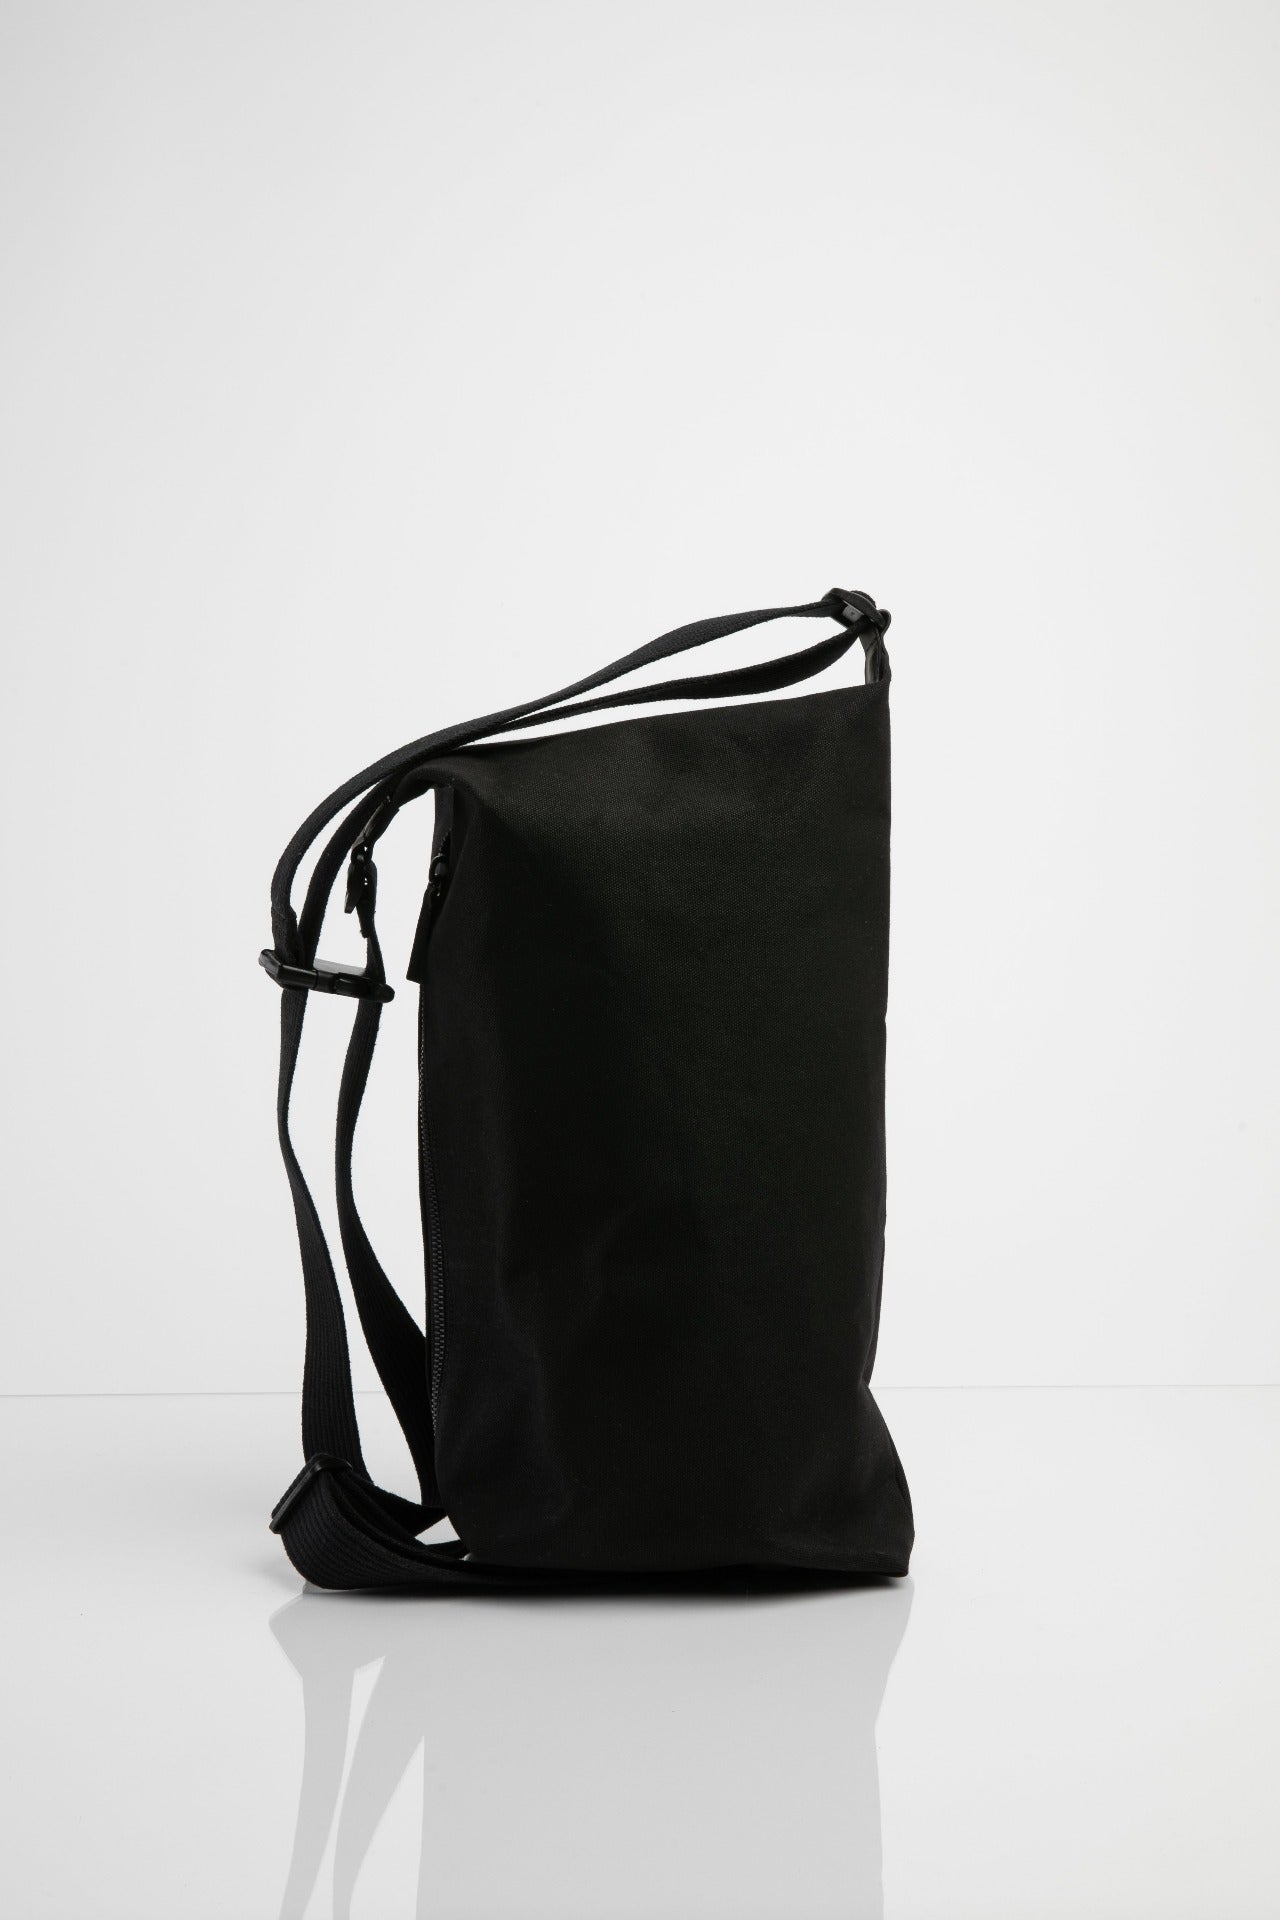 Vauxhall black waxed cotton shoulder bag